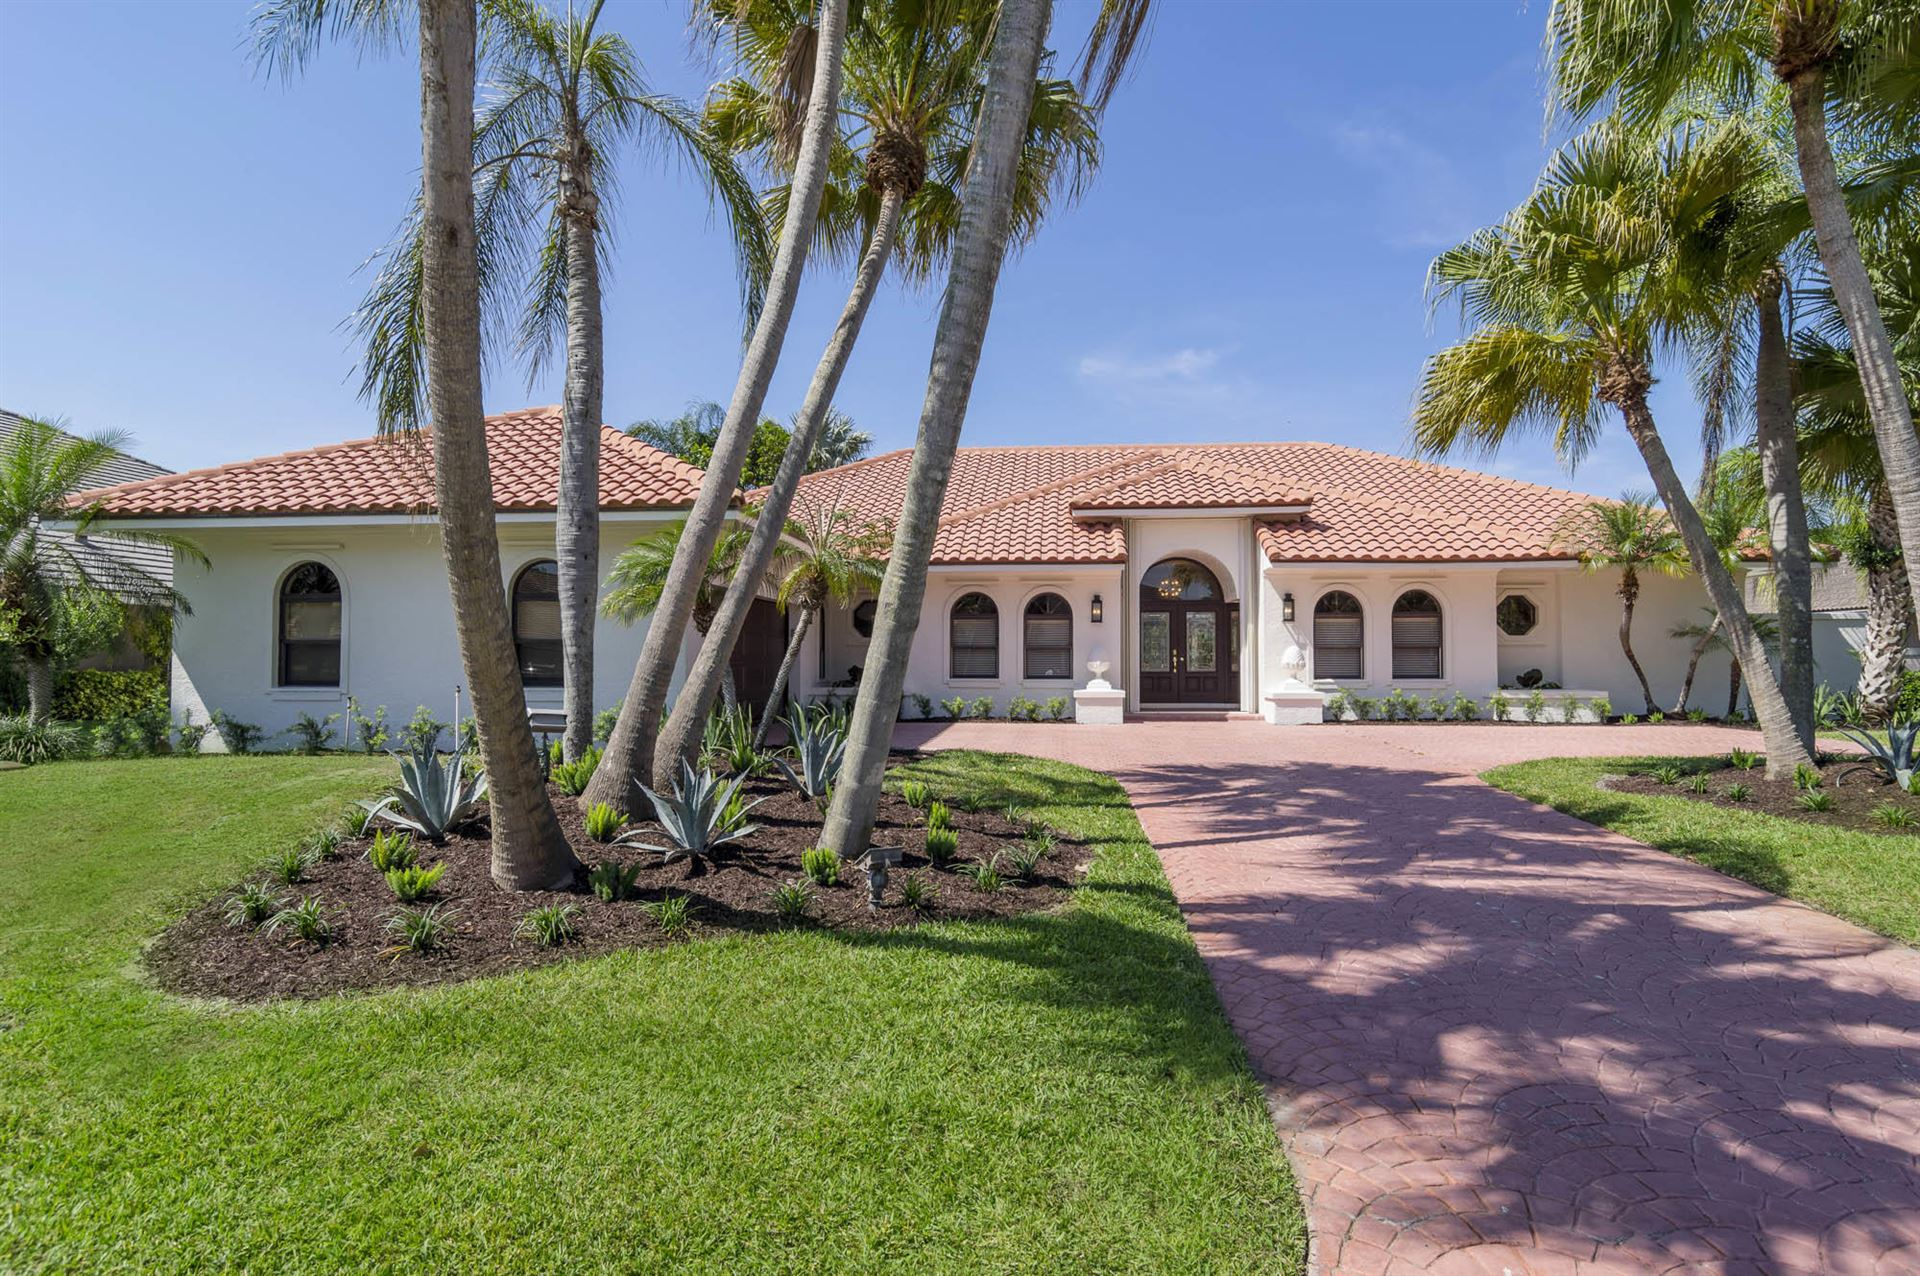 Photo of 4 Sheldrake Lane, Palm Beach Gardens, FL 33418 (MLS # RX-10715354)